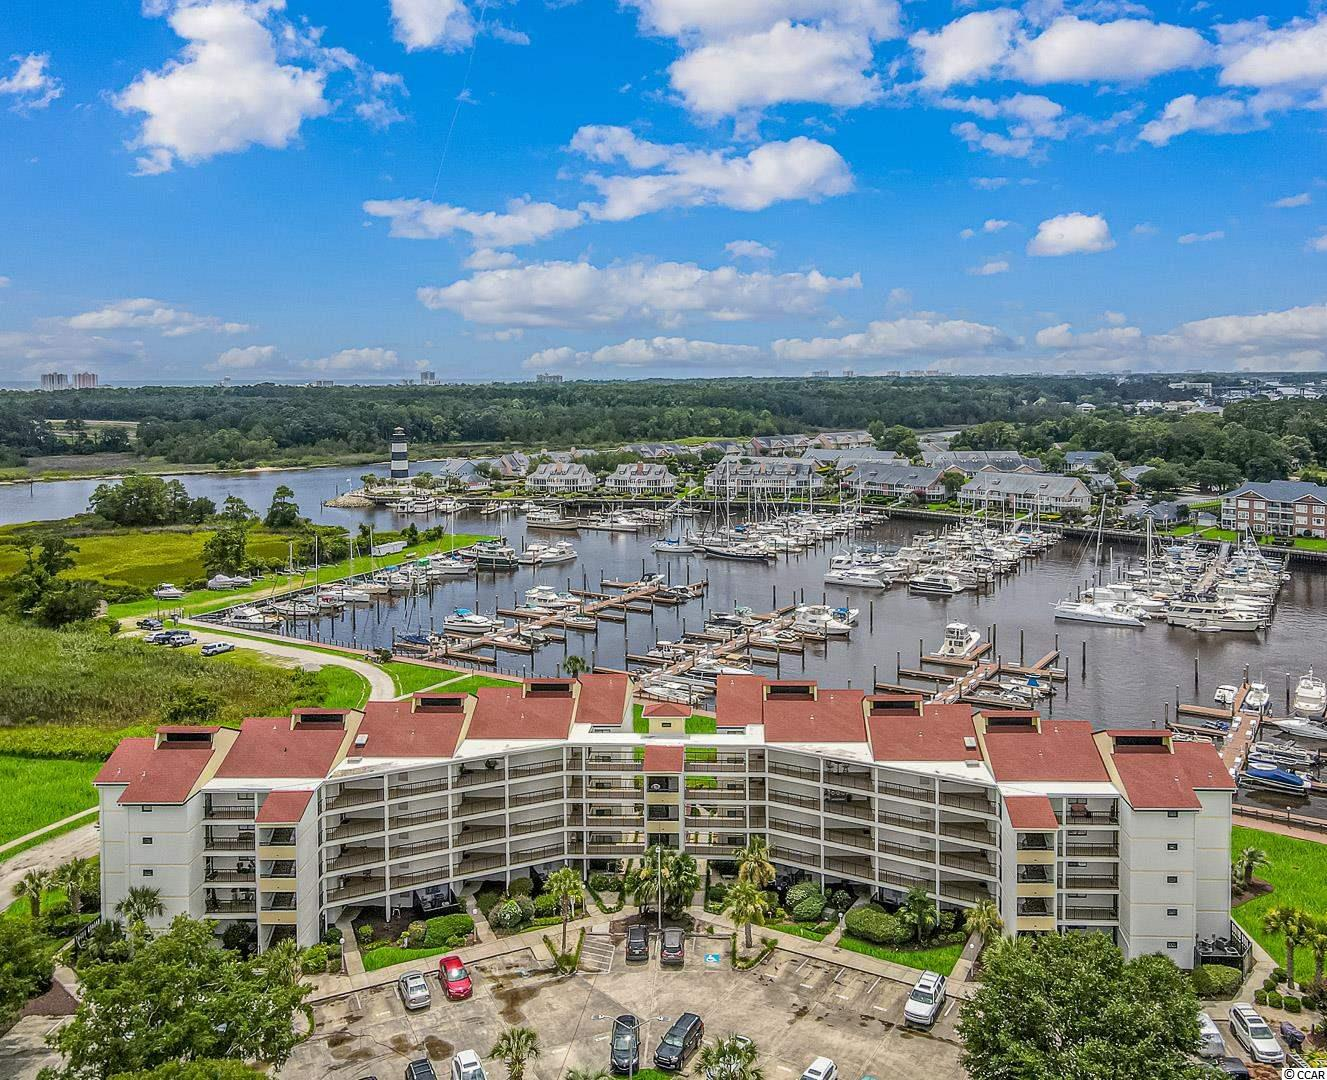 If you're looking for a stunning upgraded condo over looking the Intracoastal Waterway and Marina, look no further. This spacious third floor unit with elevator has been updated and has breathtaking views of the surrounding areas. The property features a boat slip as well for the boaters out there. The unit itself features upgraded flooring, paint, appliances, fixtures, master bathroom and more. Coquina Harbor is located right in the heart of Little River with access to shopping, medical, grocery stores and just minutes from Cherry Grove Beach. This unit has been priced VERY well and will be gone quickly. You have to see it in person to appreciate the work done, the view and the overall location of this beautiful condo. Schedule a showing today!!!